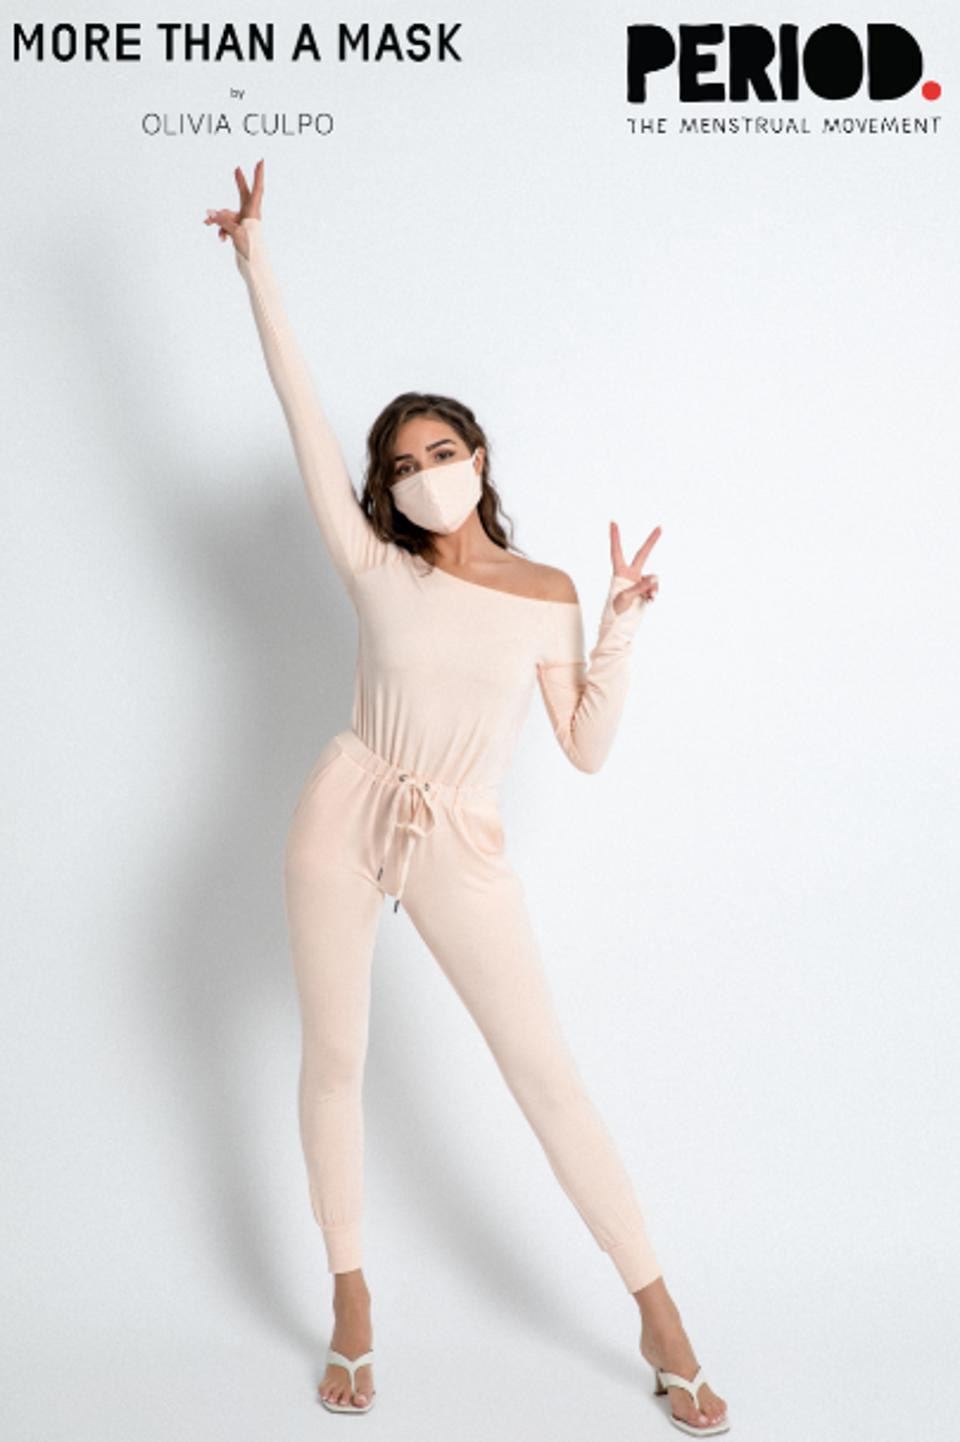 Olivia Culpo poses with a pink jump-suit on